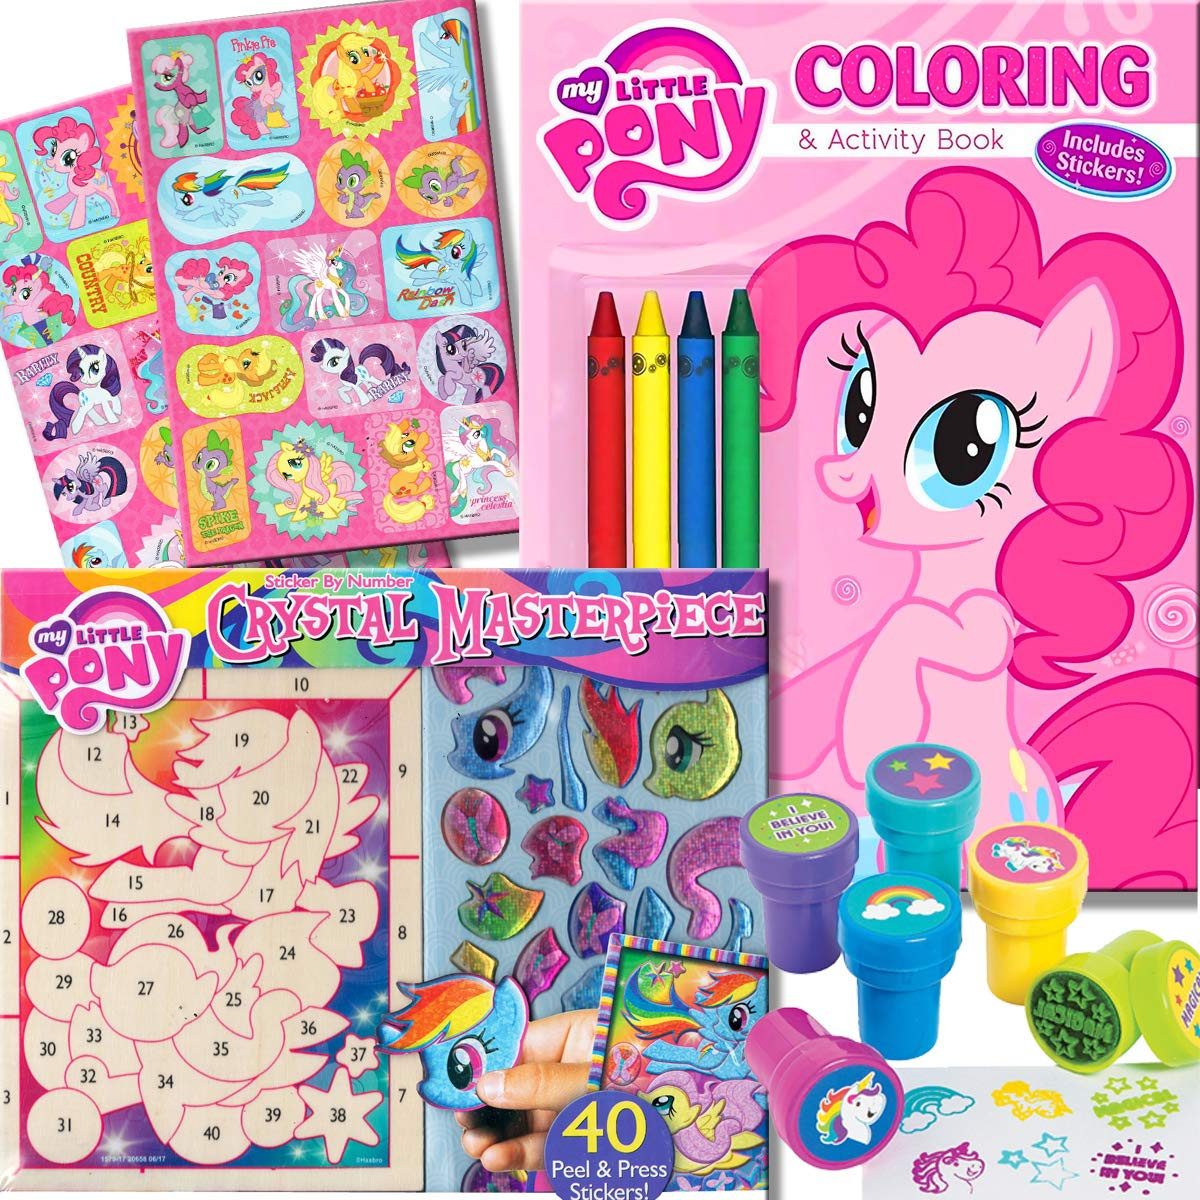 My Little Pony Coloring Book With Crystal Masterpiece Set 32 Page Coloring Book My Little Pony Stickers Crayons And Stampers